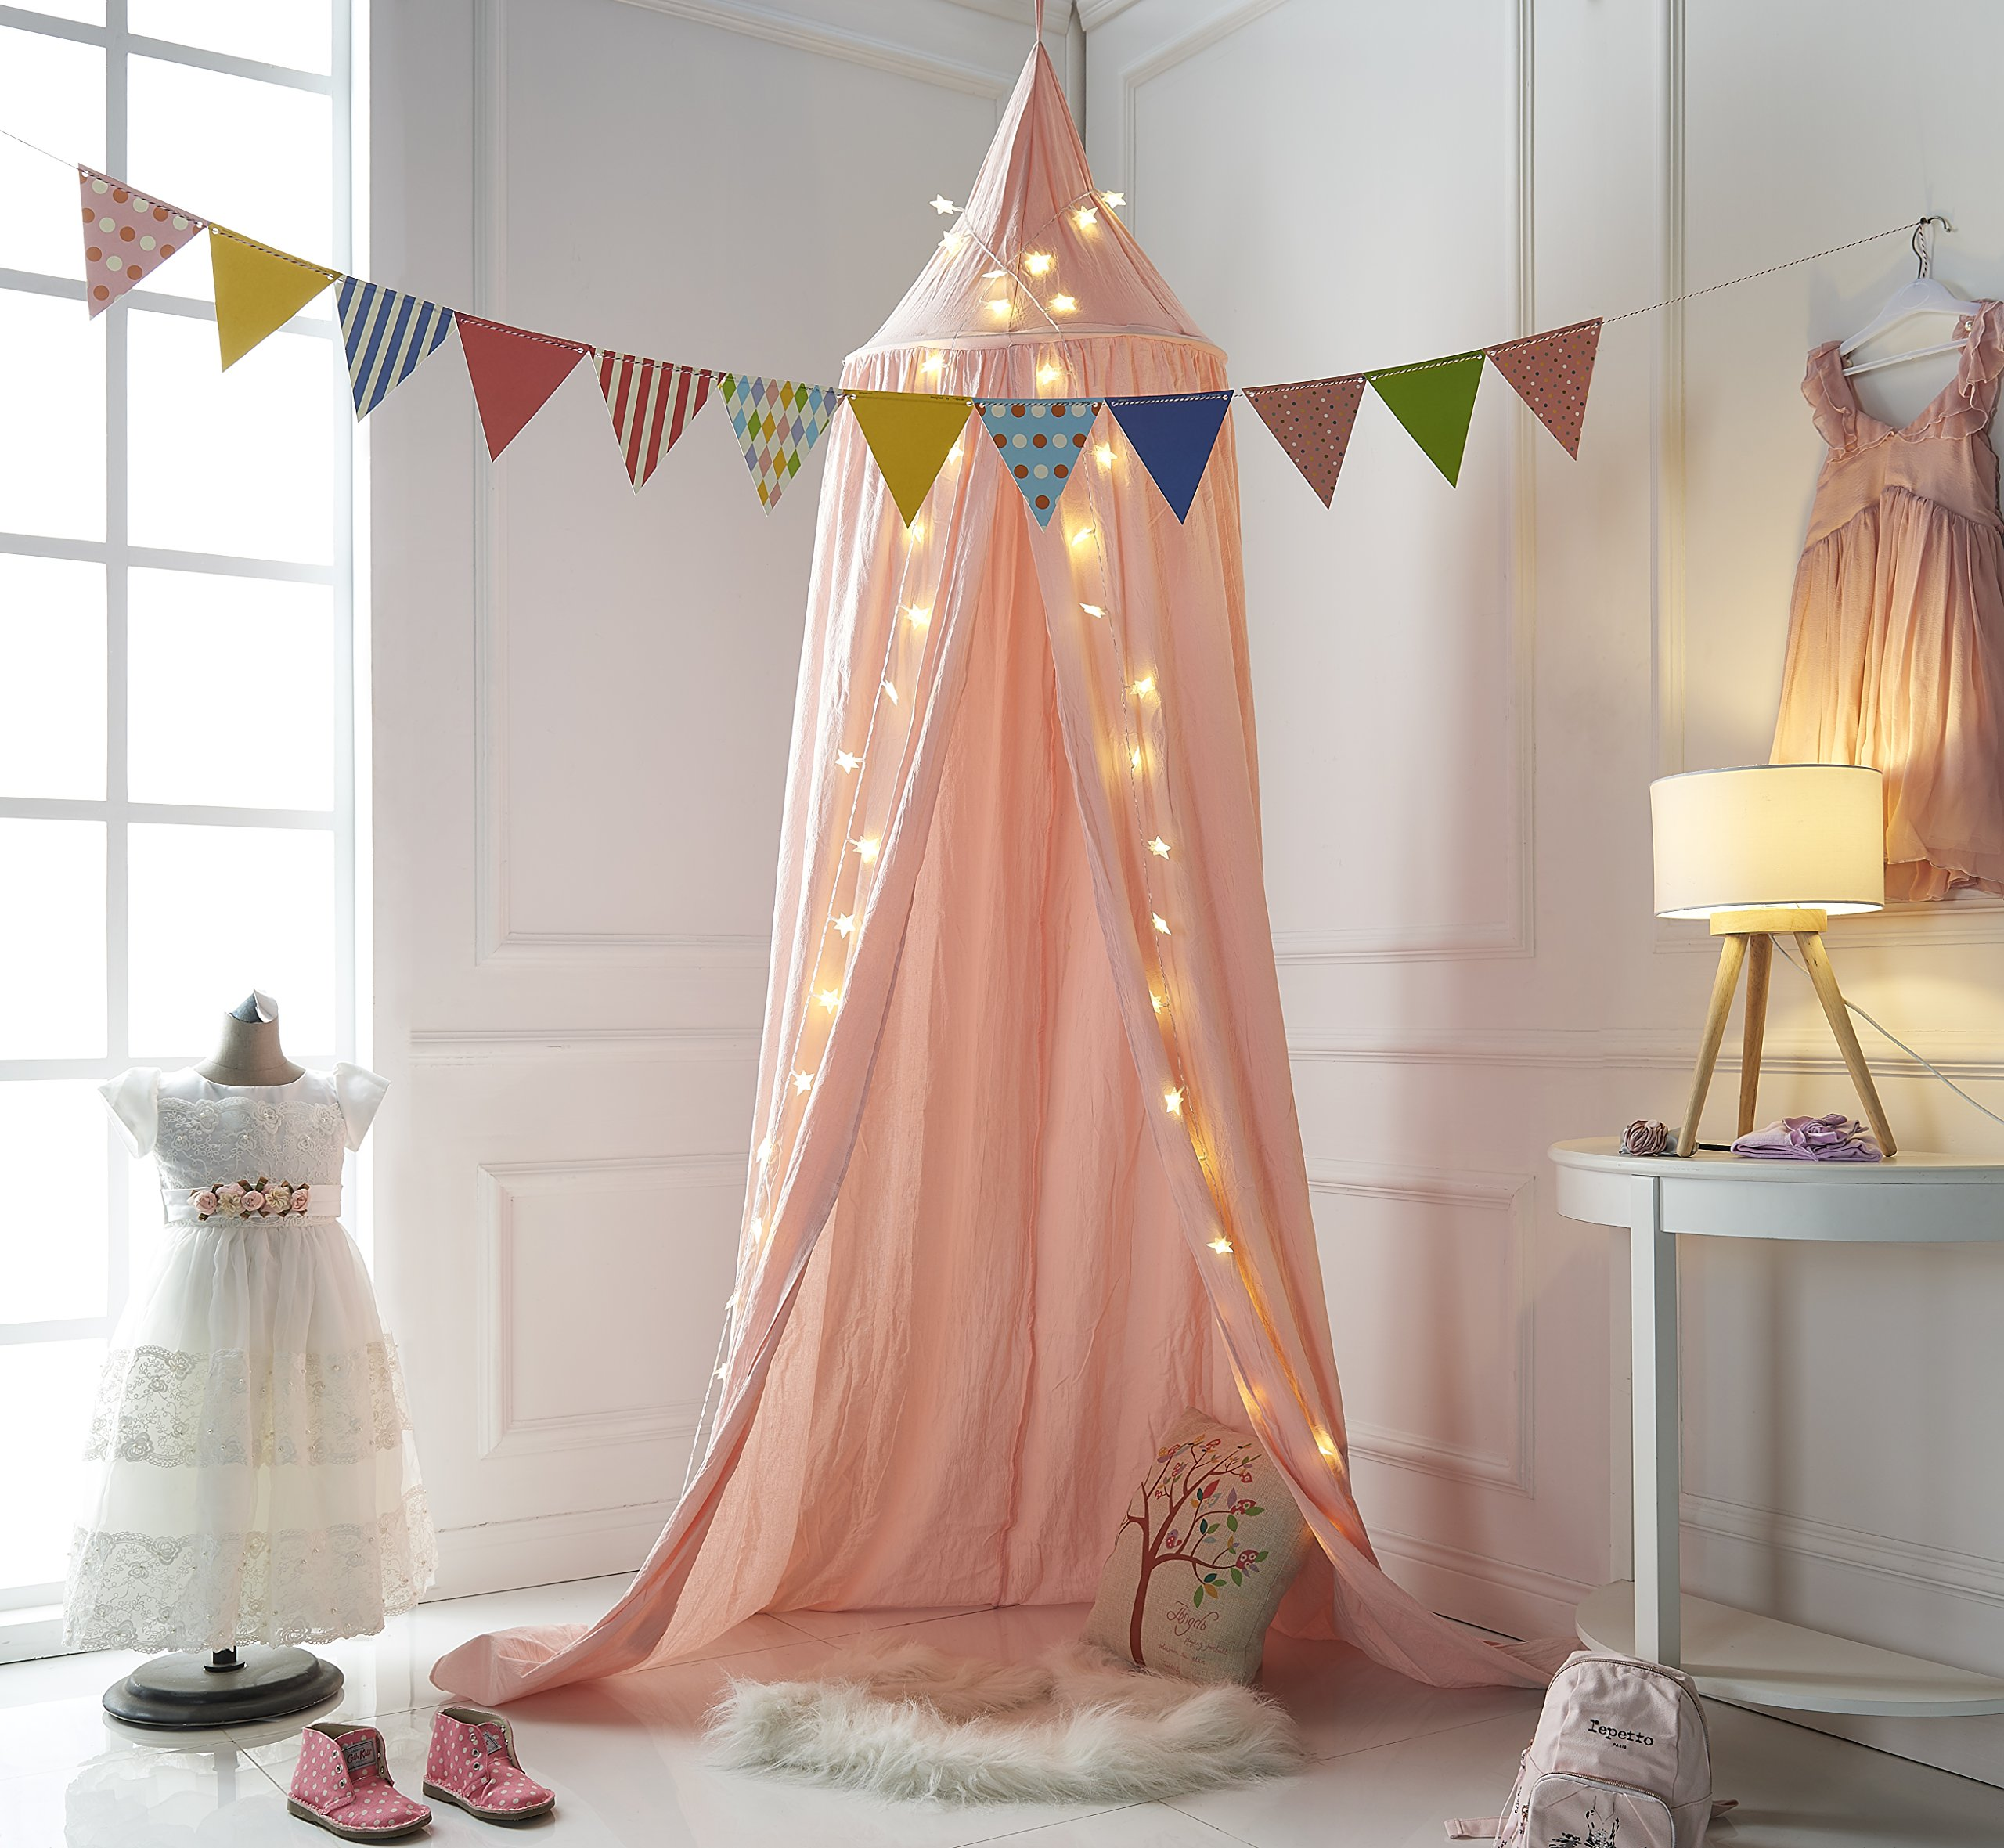 Truedays Dome Princess Bed Canopy Mosquito Net Children Room Decorate (Pink) product image